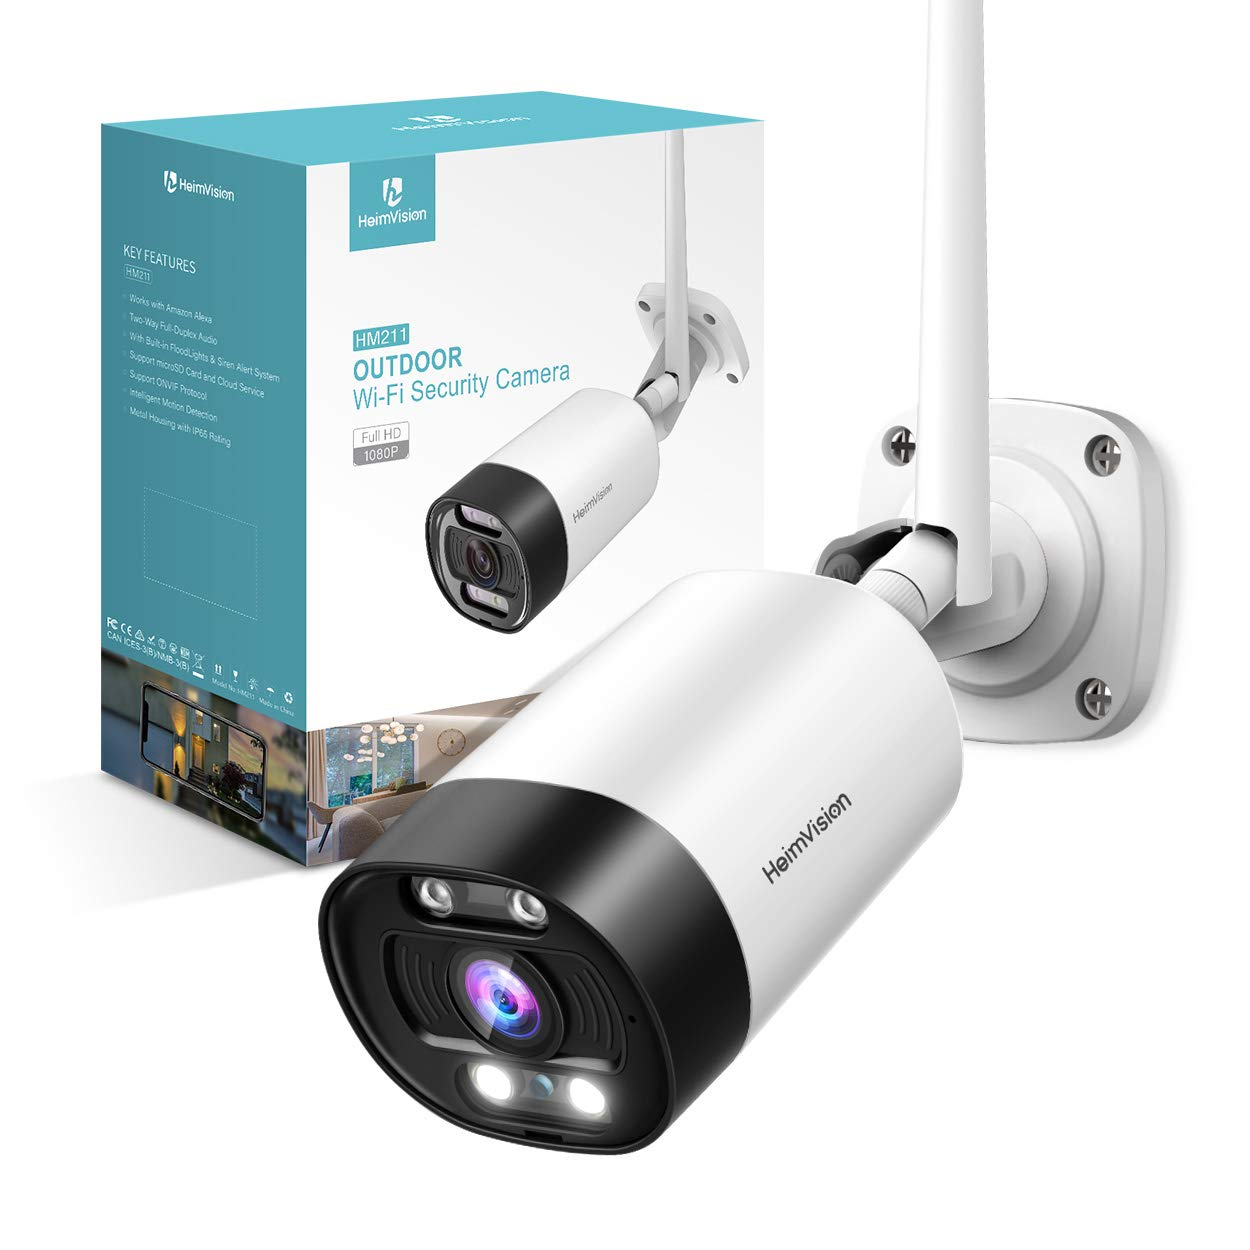 HeimVision HM211 Outdoor Security Camera Wireless, 1080P WiFi Surveillance Camera with Night Vision, Floodlight, Siren Alarm, Two-Way Audio, Motion Detection, Waterproof, Cloud Service/Microsd Support